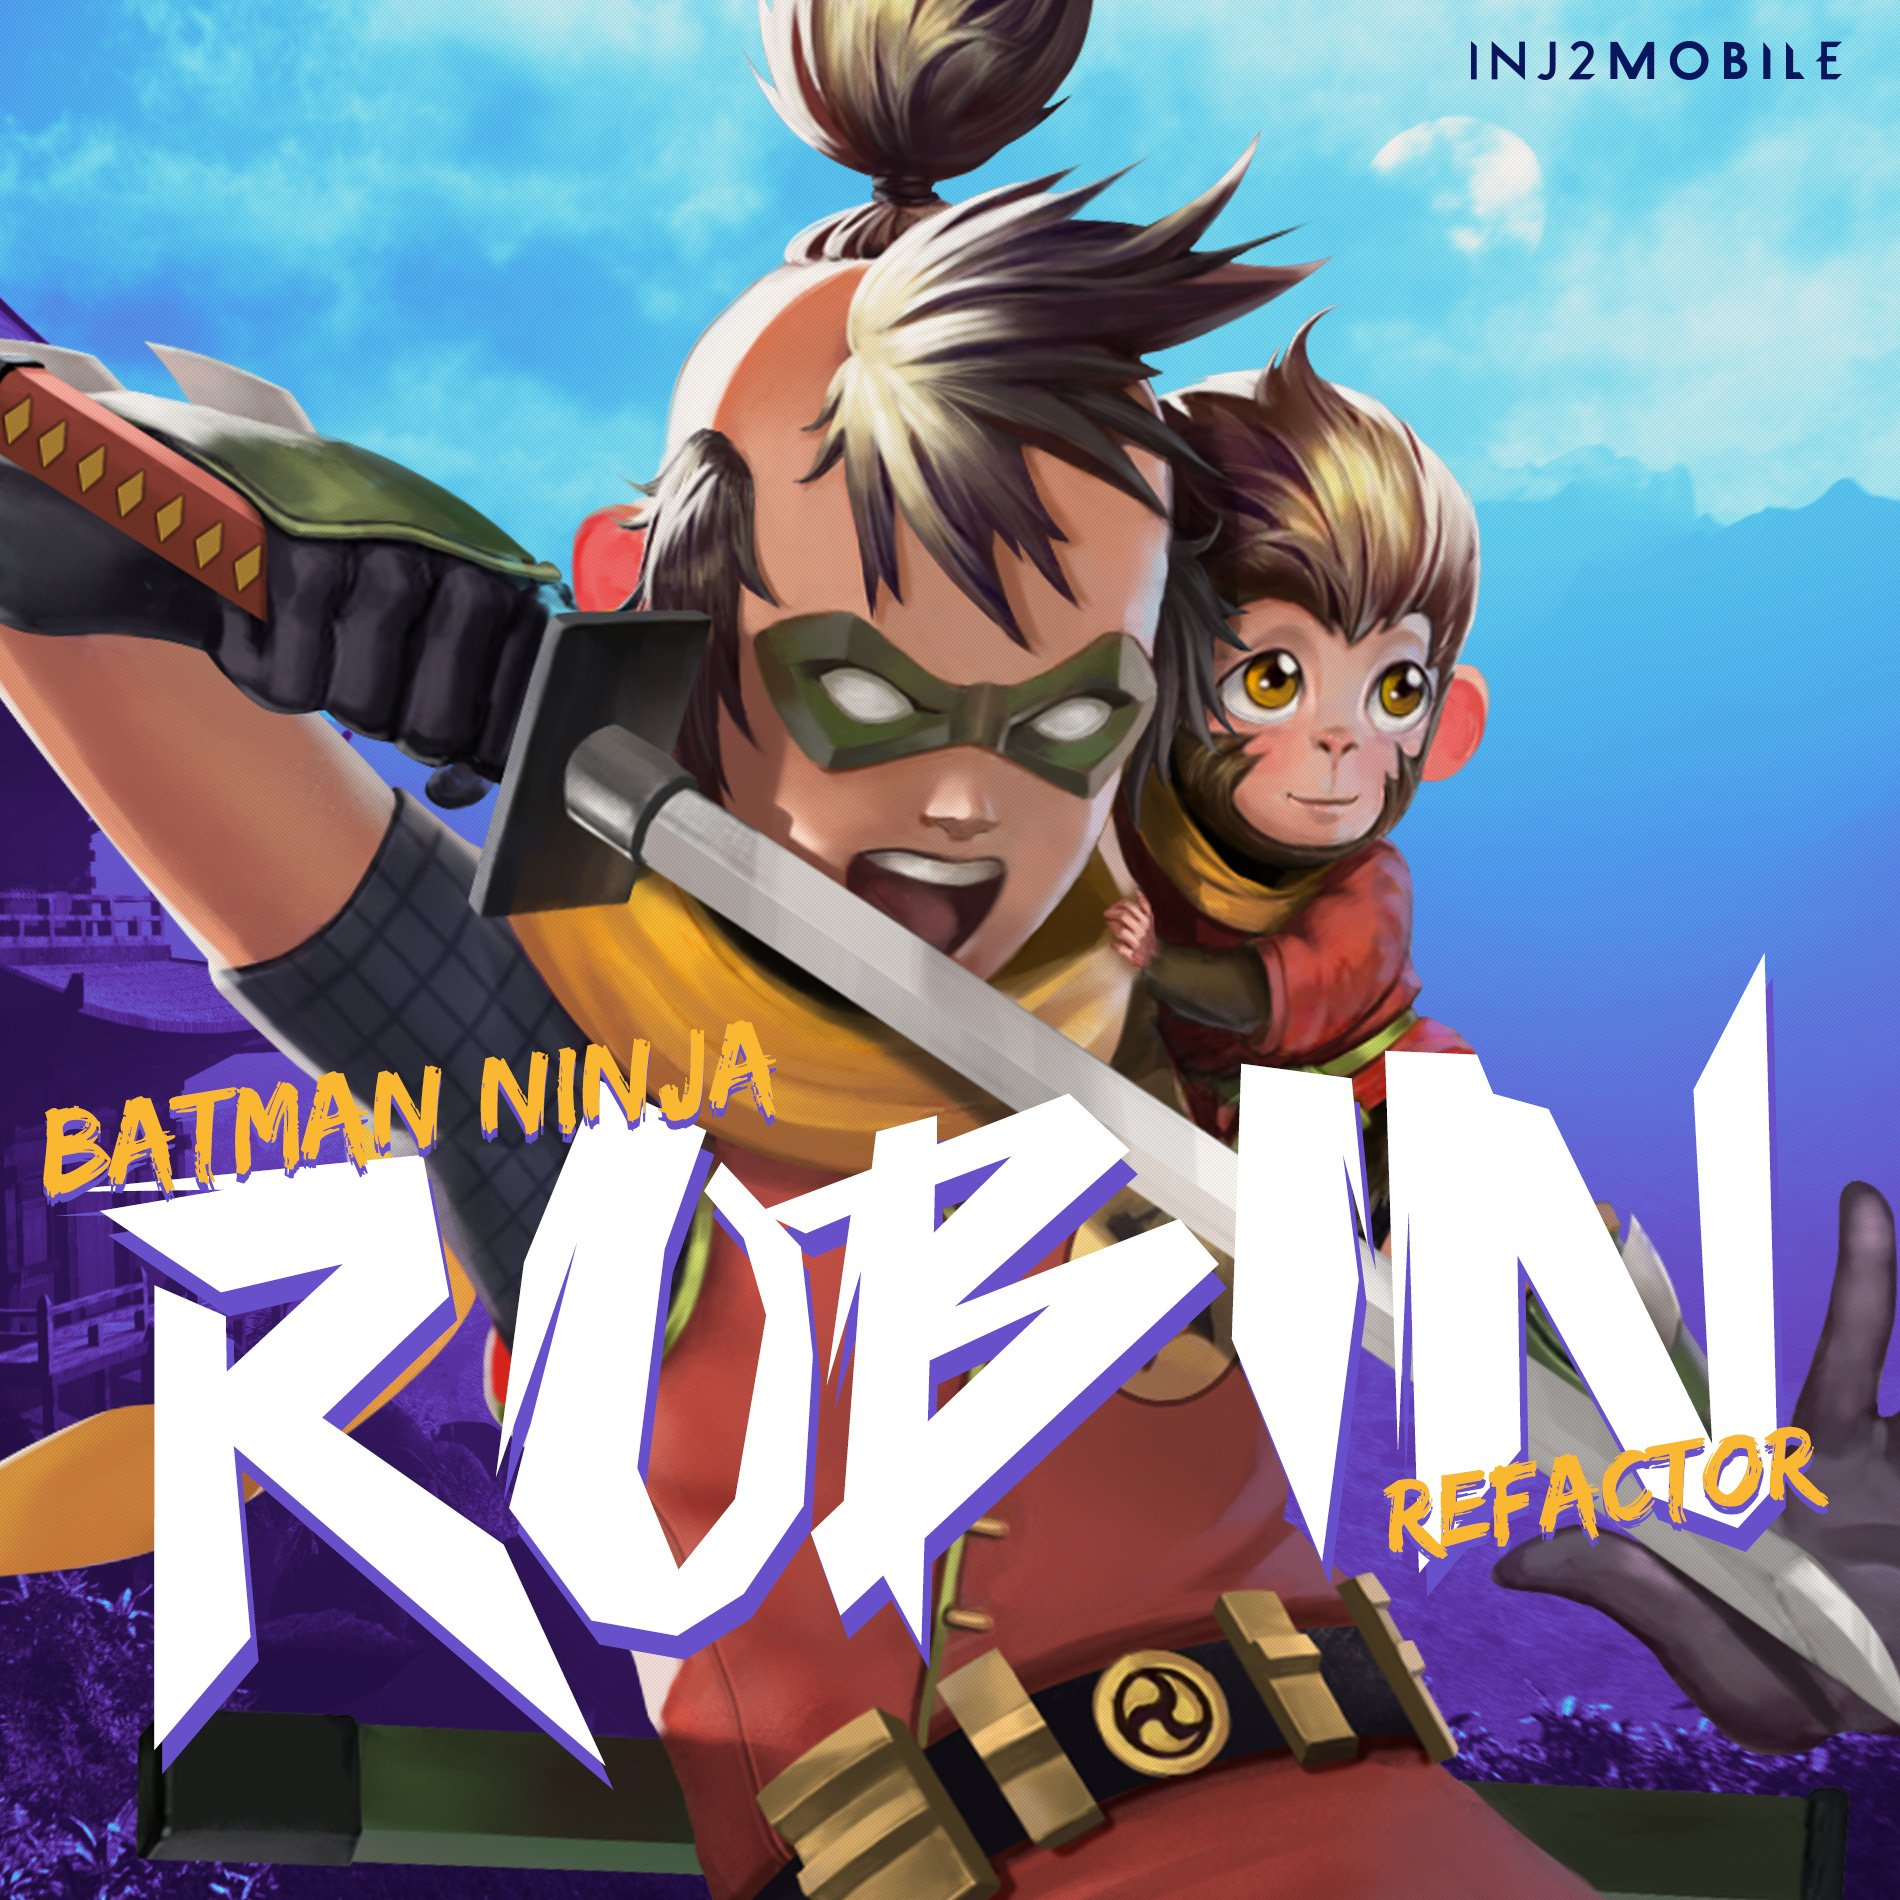 Injustice 2 Mobile On Twitter Amplify And Stack Lethal Attack Damage With Batman Ninja Robin S Upcoming 3 2 Refactor Inj2mobile